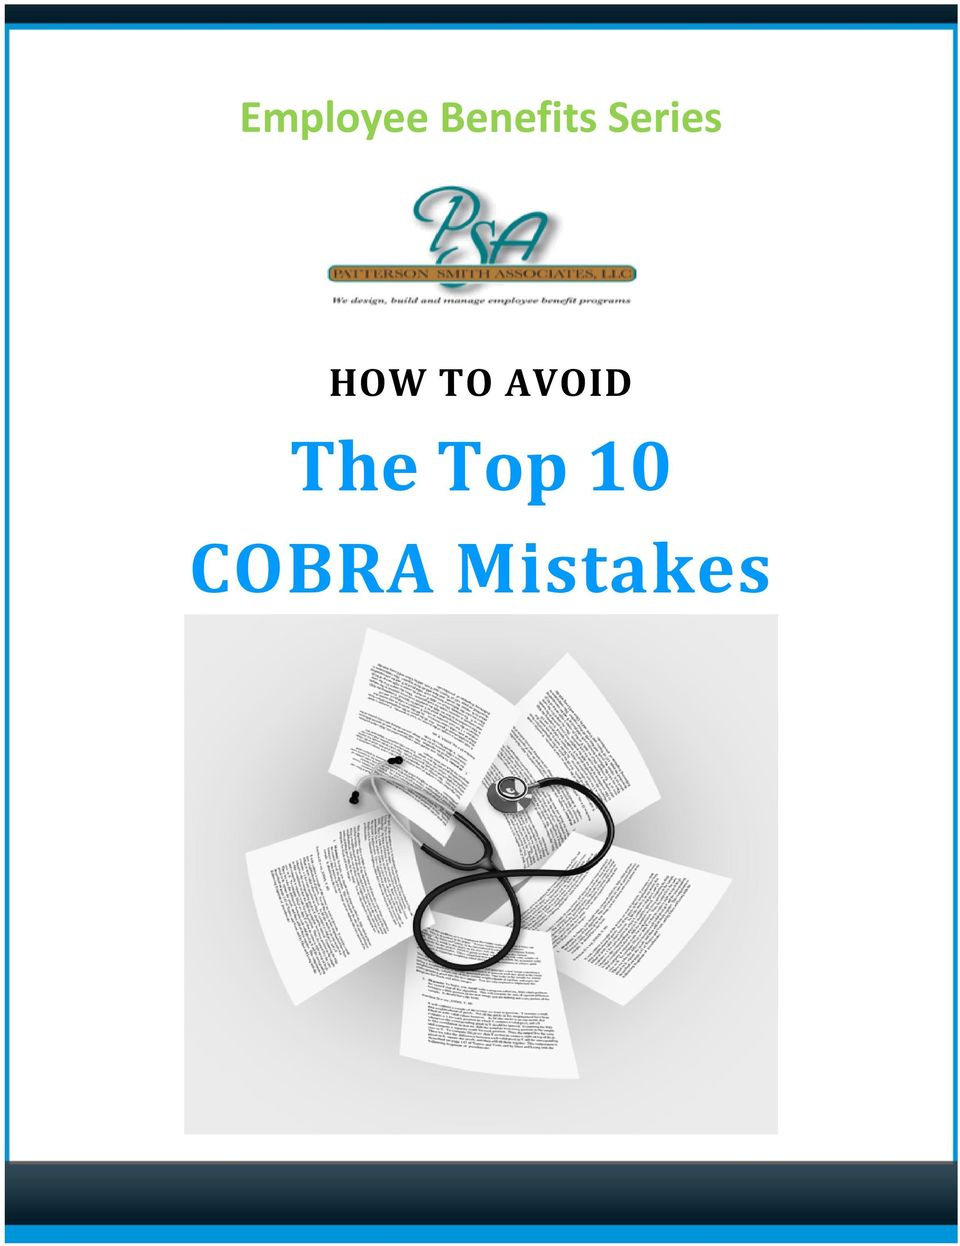 The Top 10 COBRA